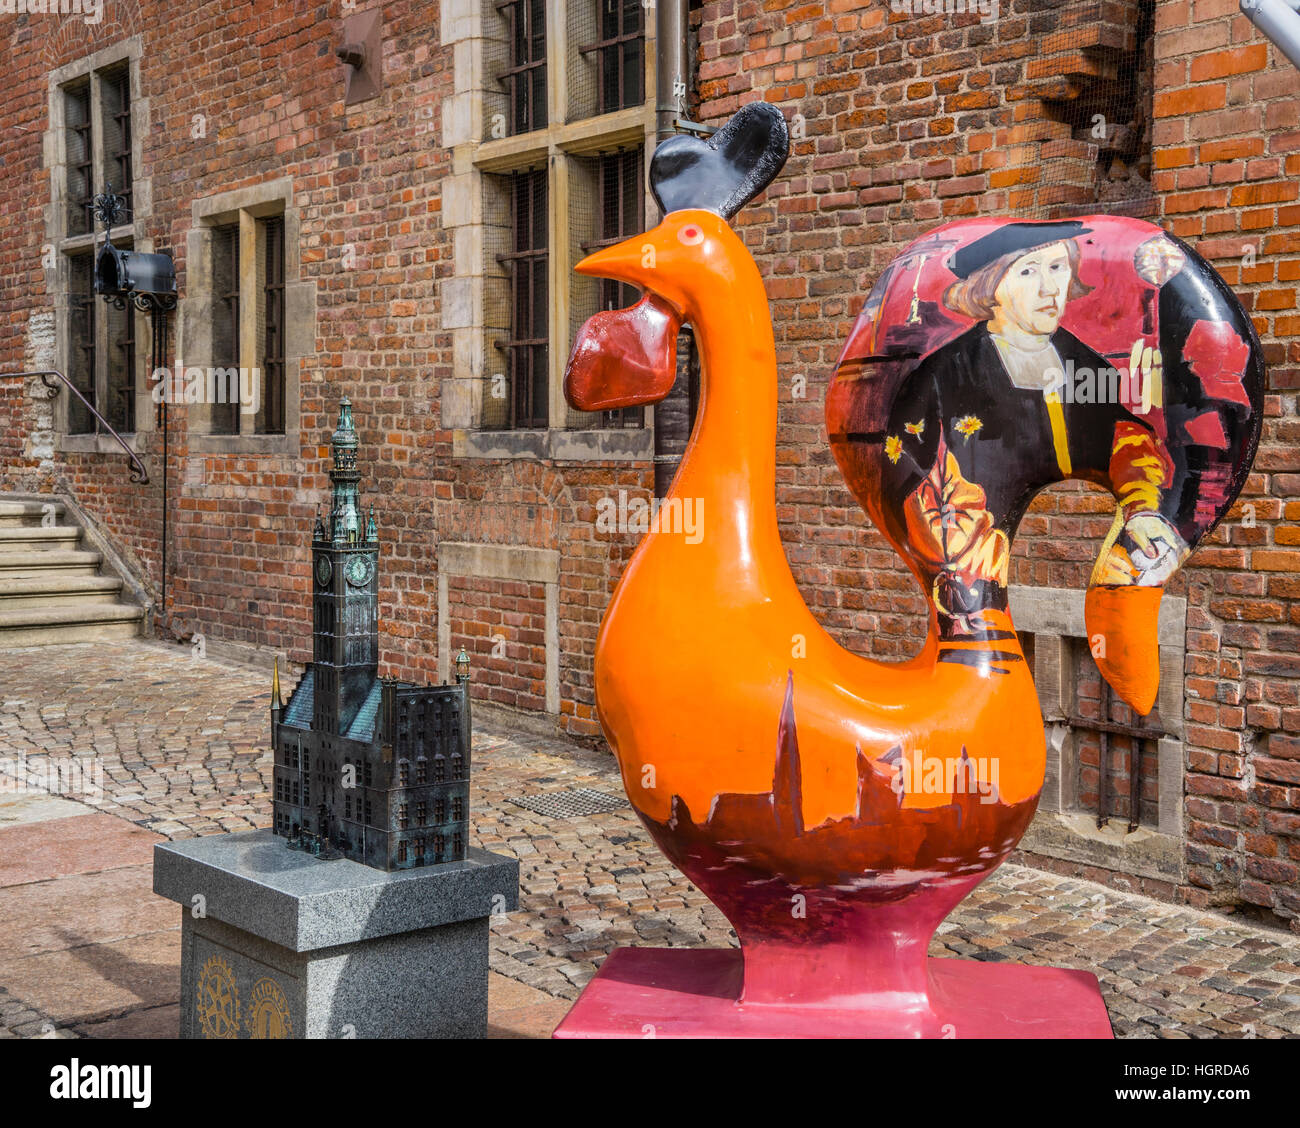 Poland, Pomerania, Gdansk (Danzig), miniature model and rooster sculpture at the Main City Hall - Stock Image